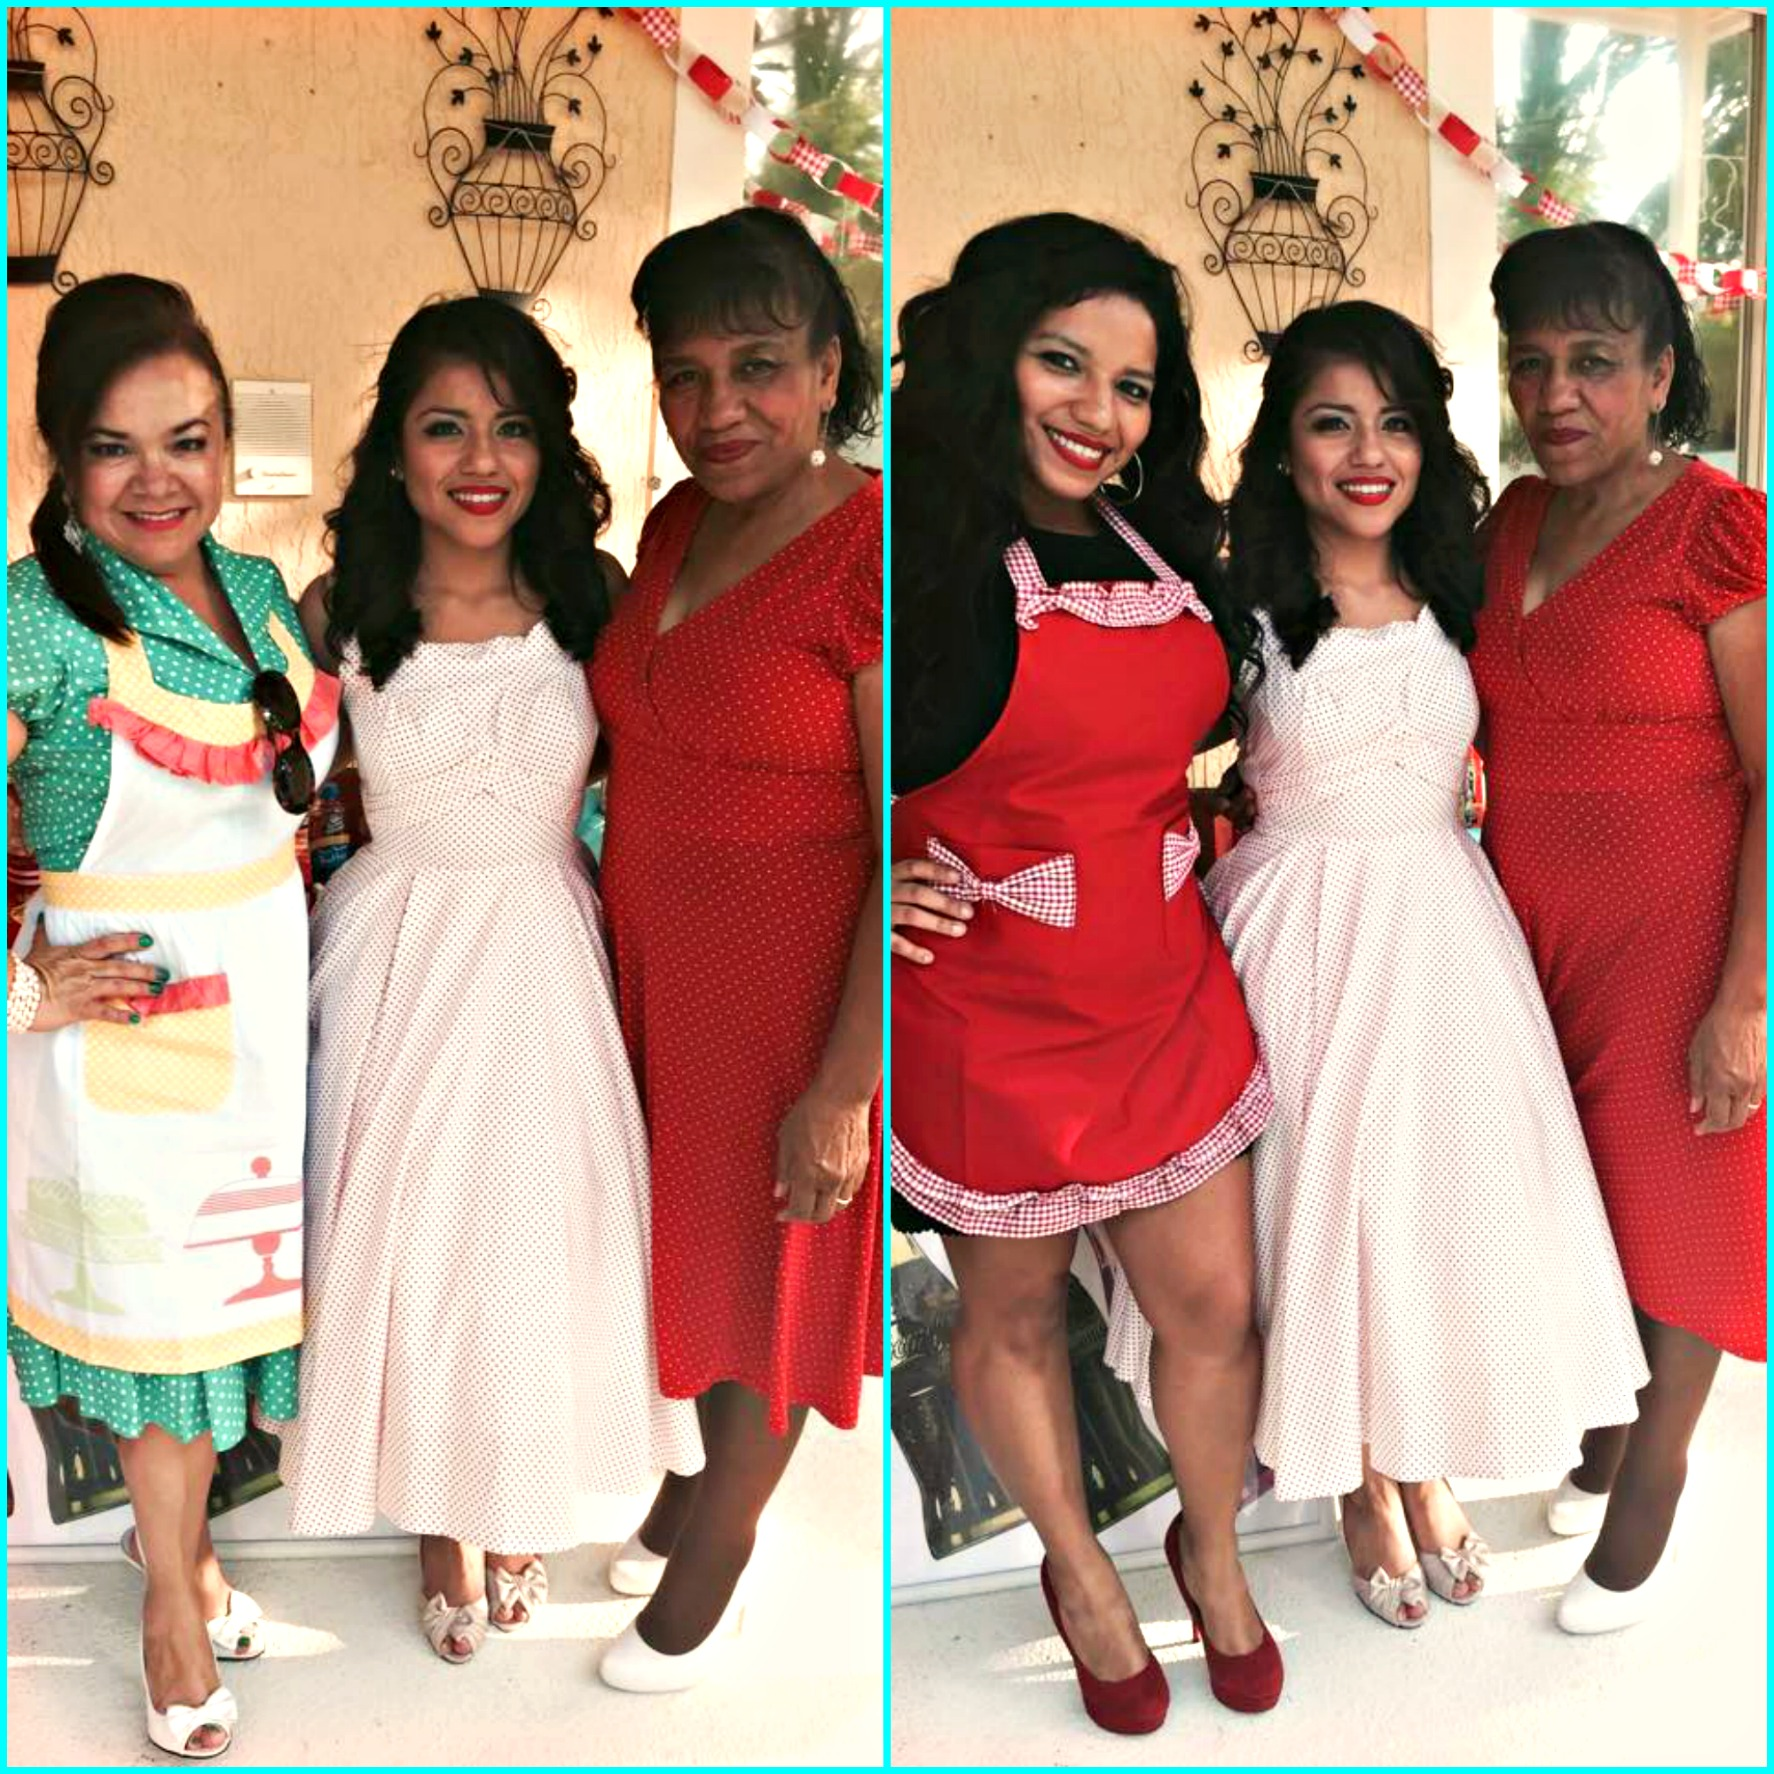 50s Retro Housewife Themed Bridal Shower Rent My Wedding Blog